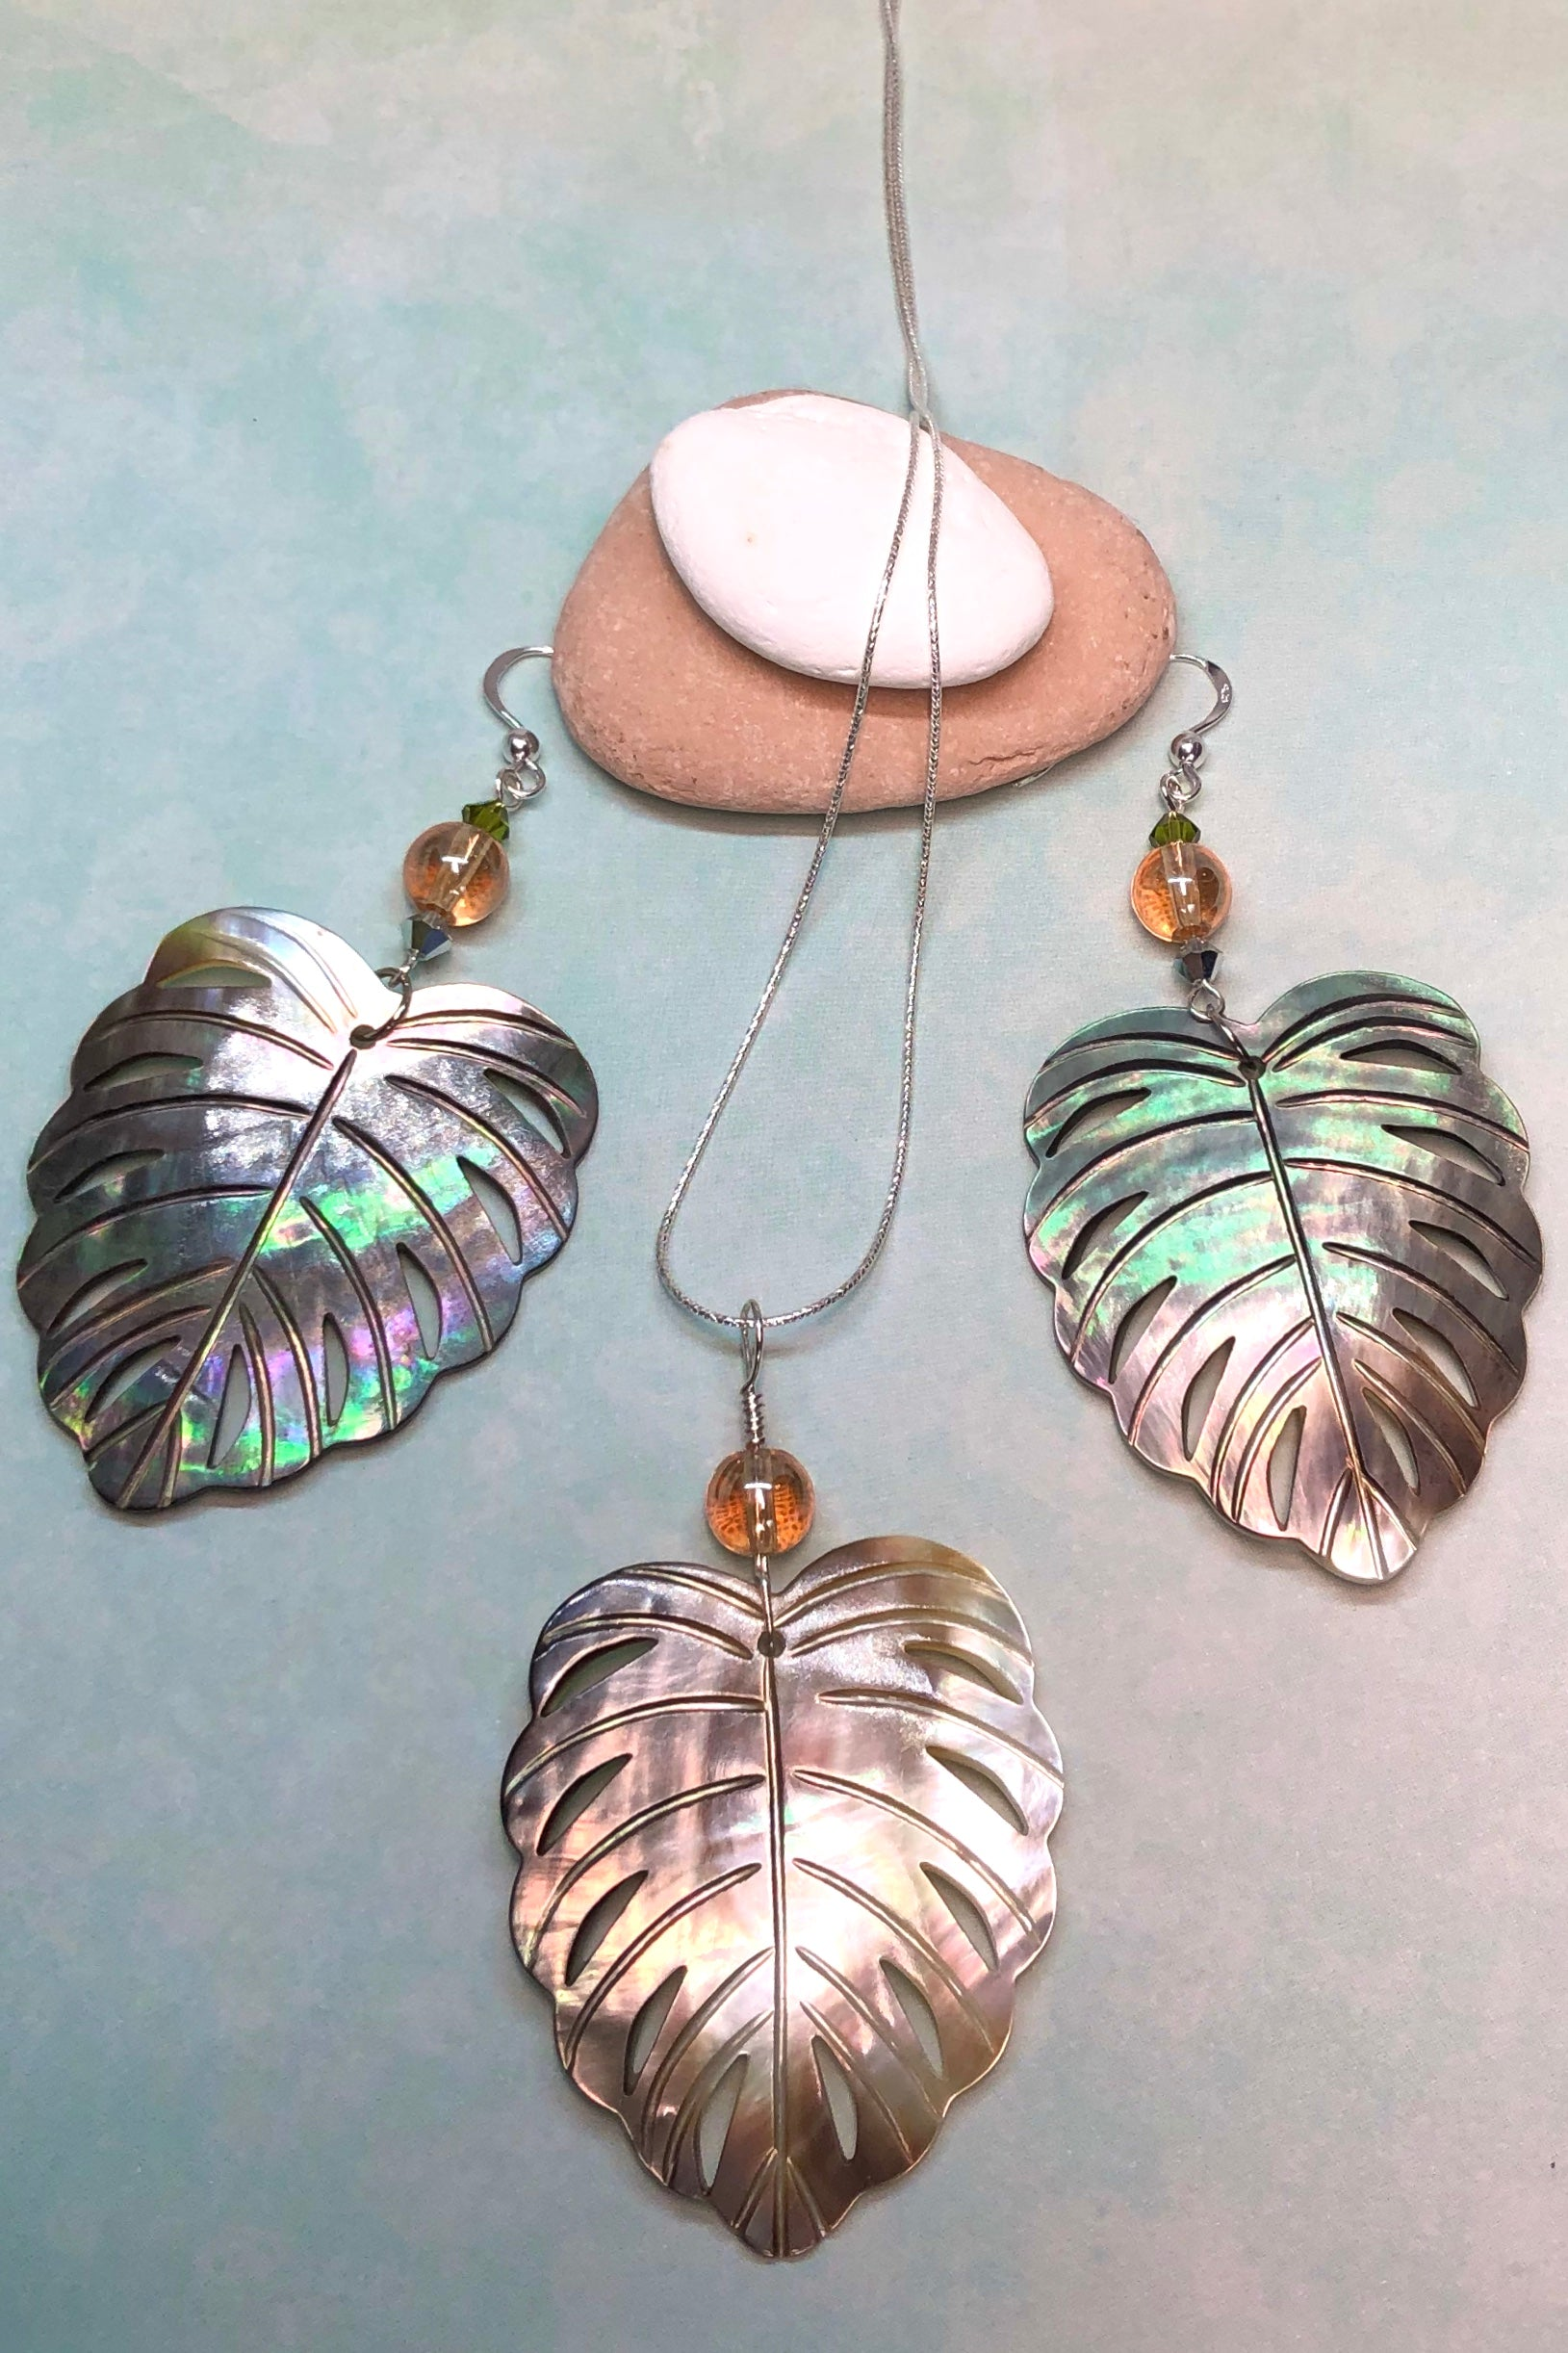 The gorgeous leaf in gold and silvery bronze Mother of Pearl has been hand cut and polished. At the top there is an iridescent crystal bead and a swarovski crystal bead. These earrings are made exclusively for Mombasa Rose